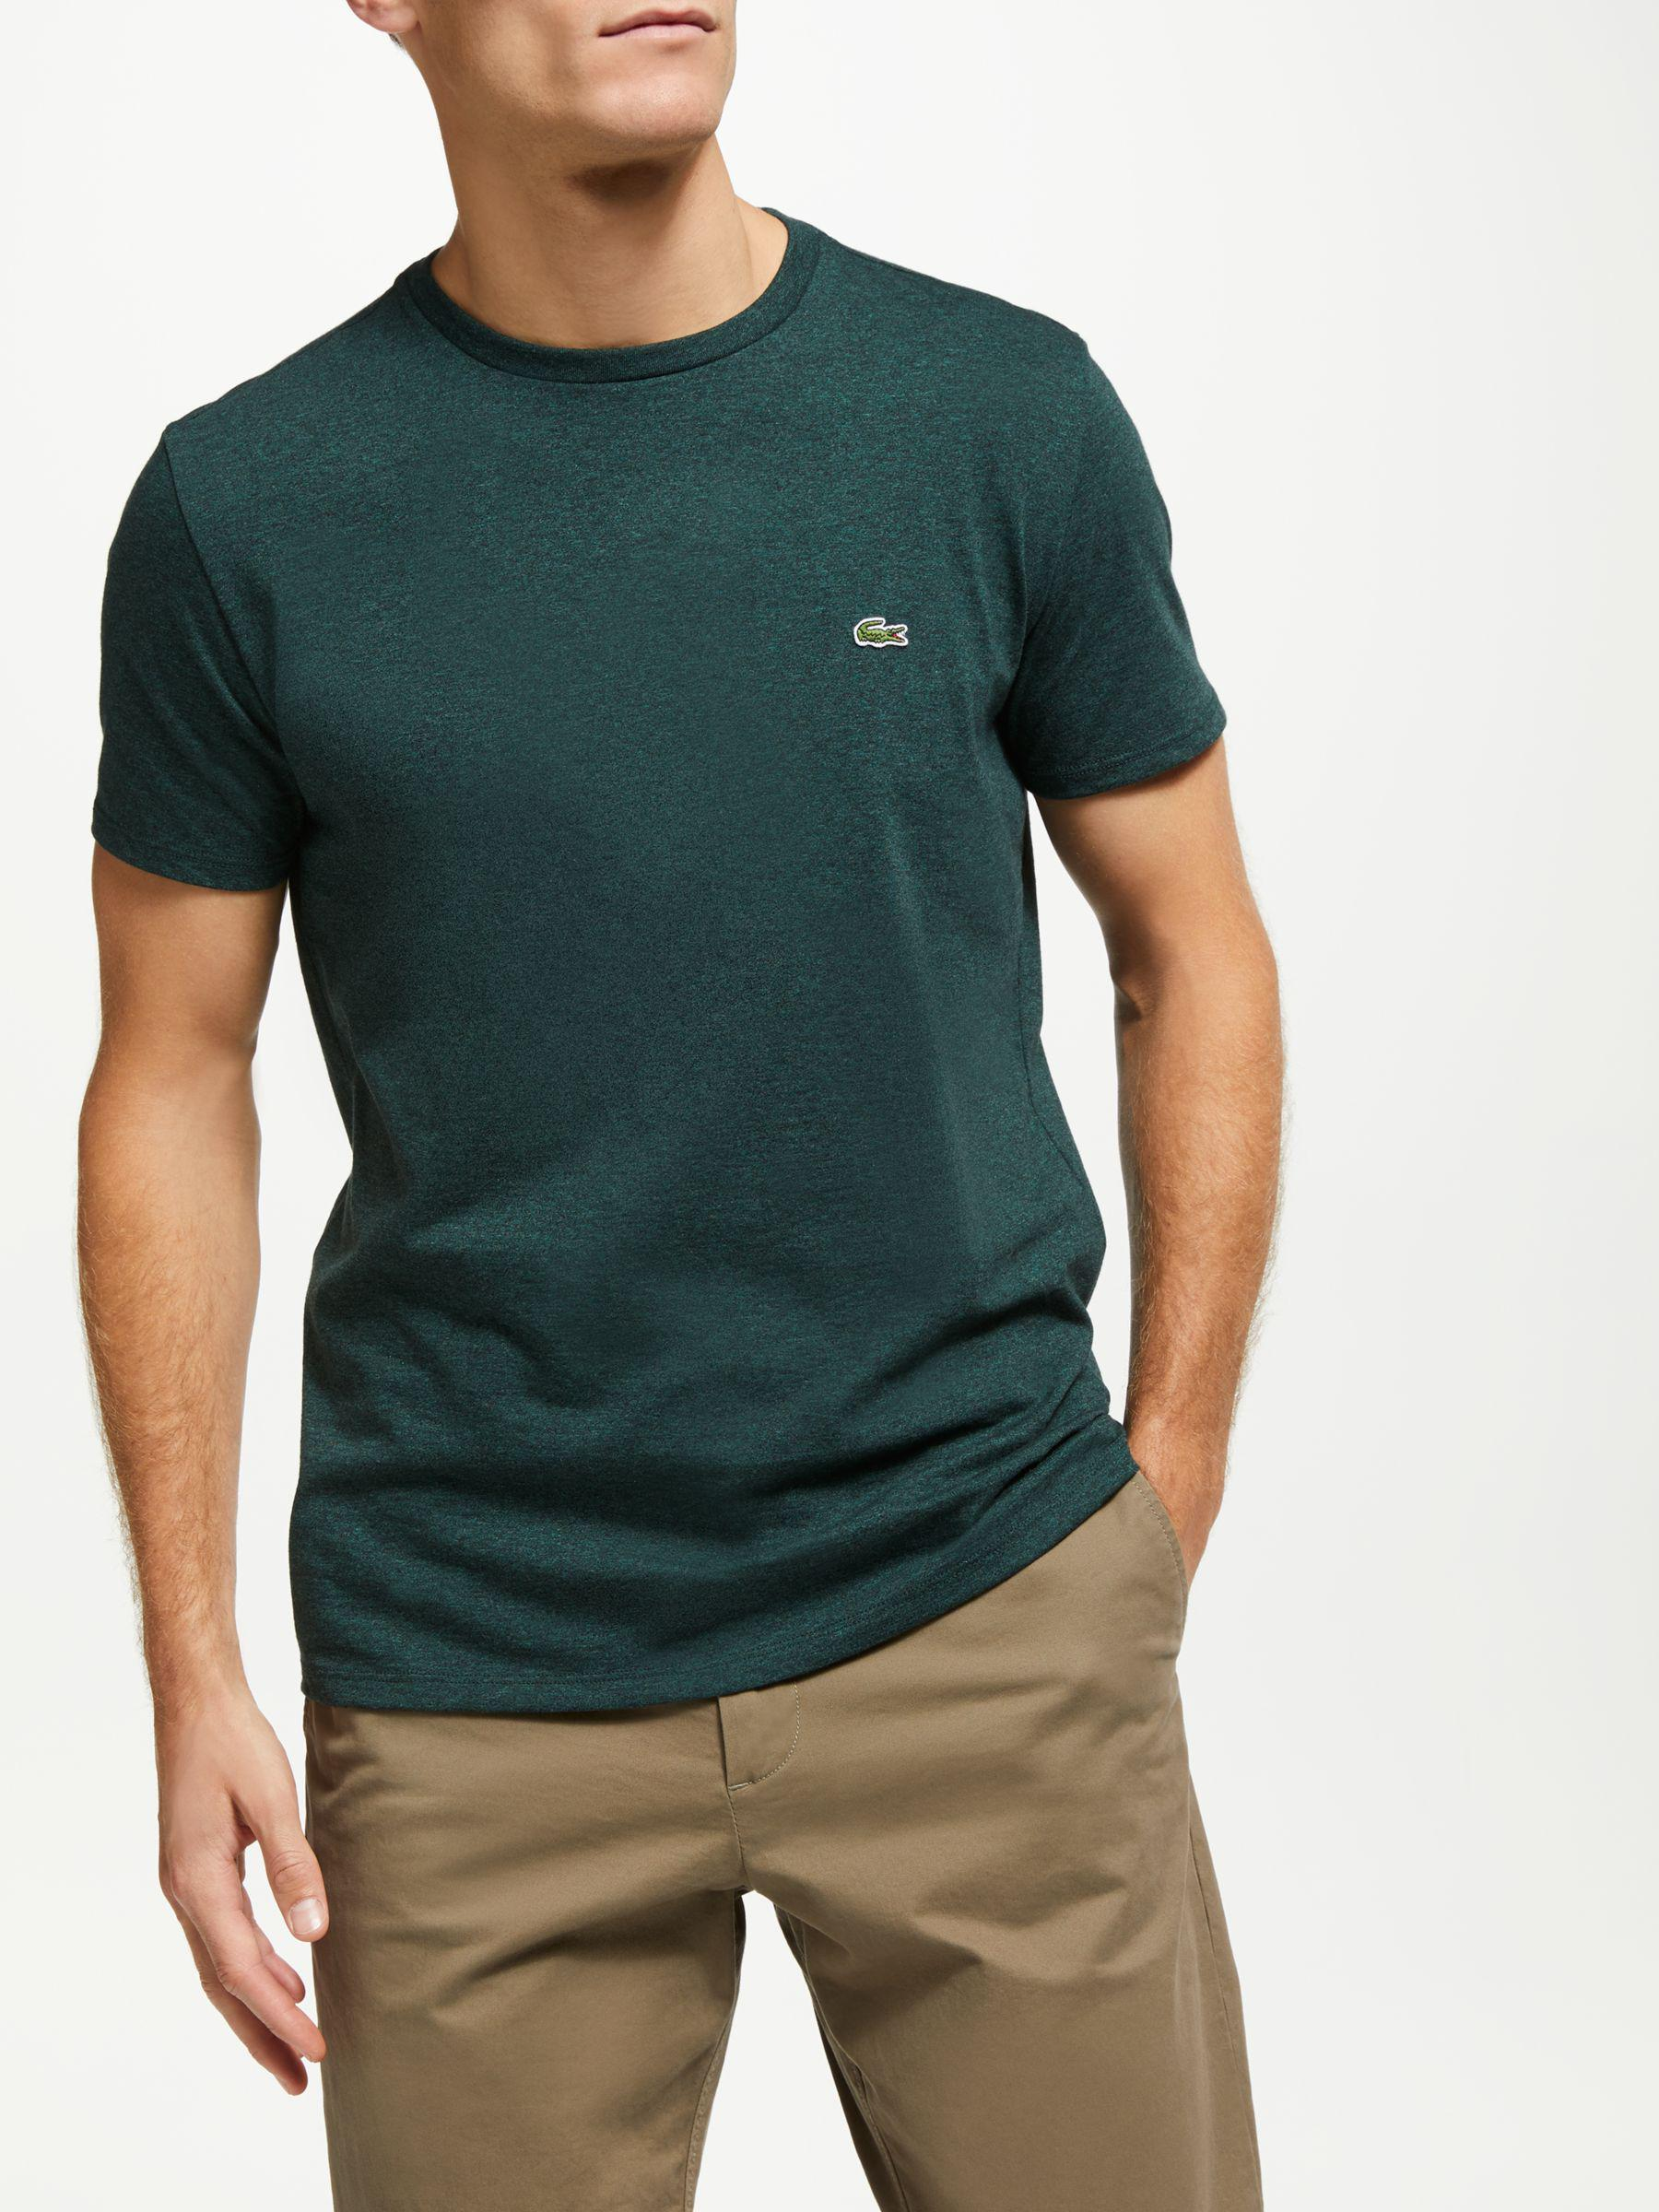 f75895c9 Lacoste Crew Neck Short Sleeve T-shirt in Green for Men - Lyst